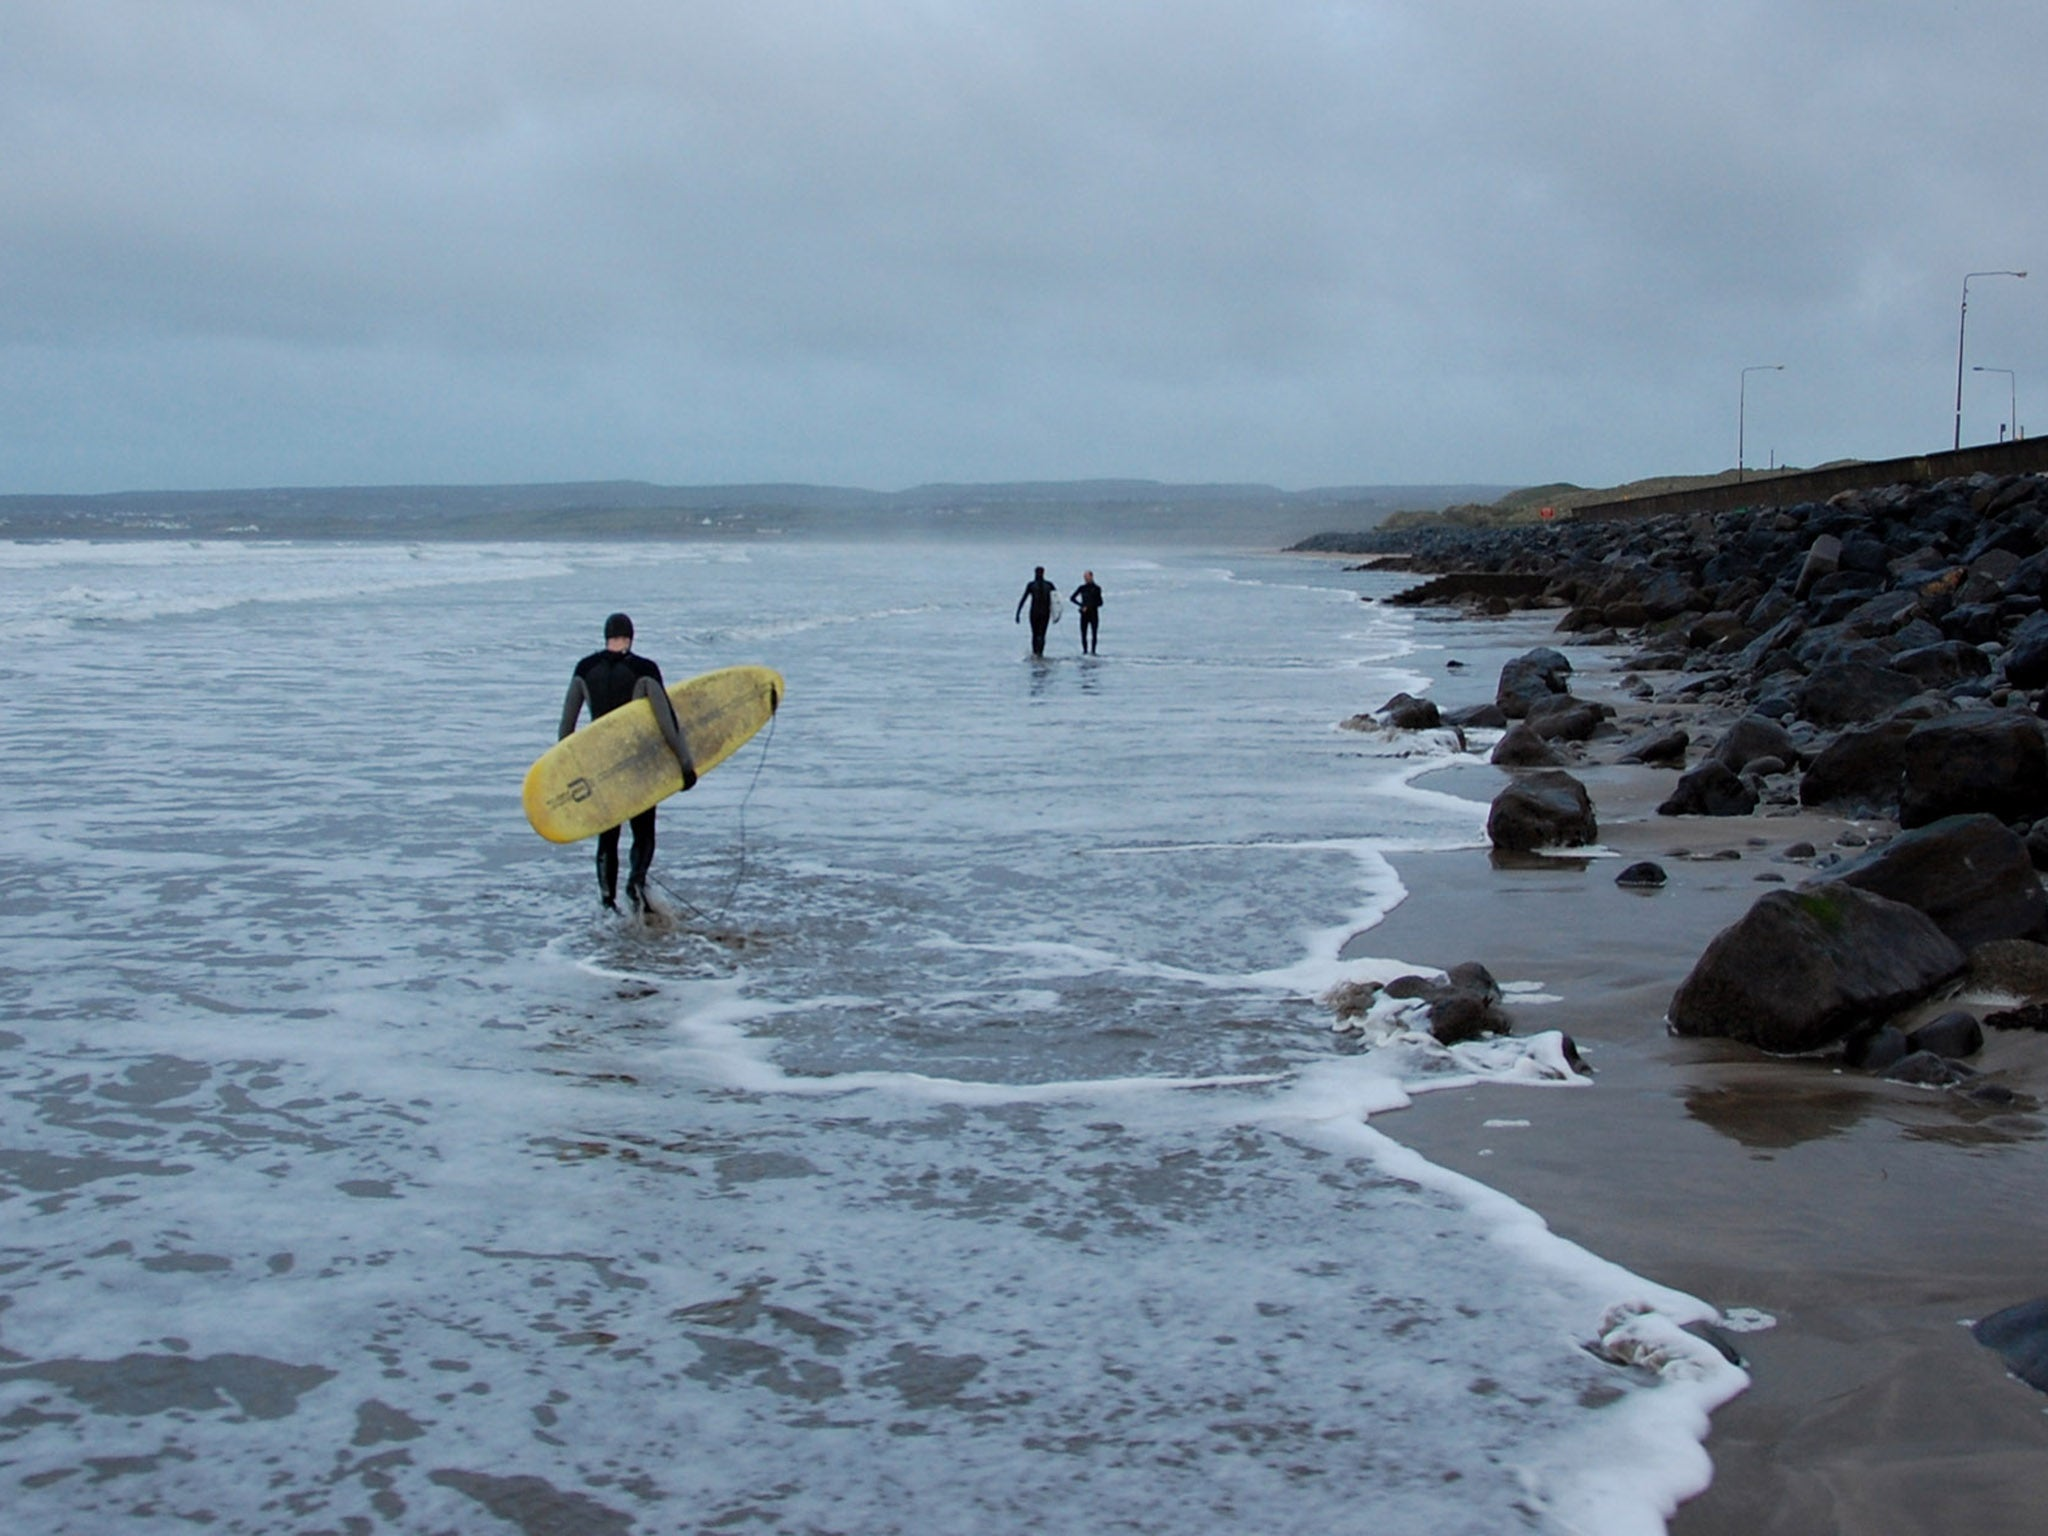 Where the wild things are: The people chasing waves on Ireland's Atlantic Way